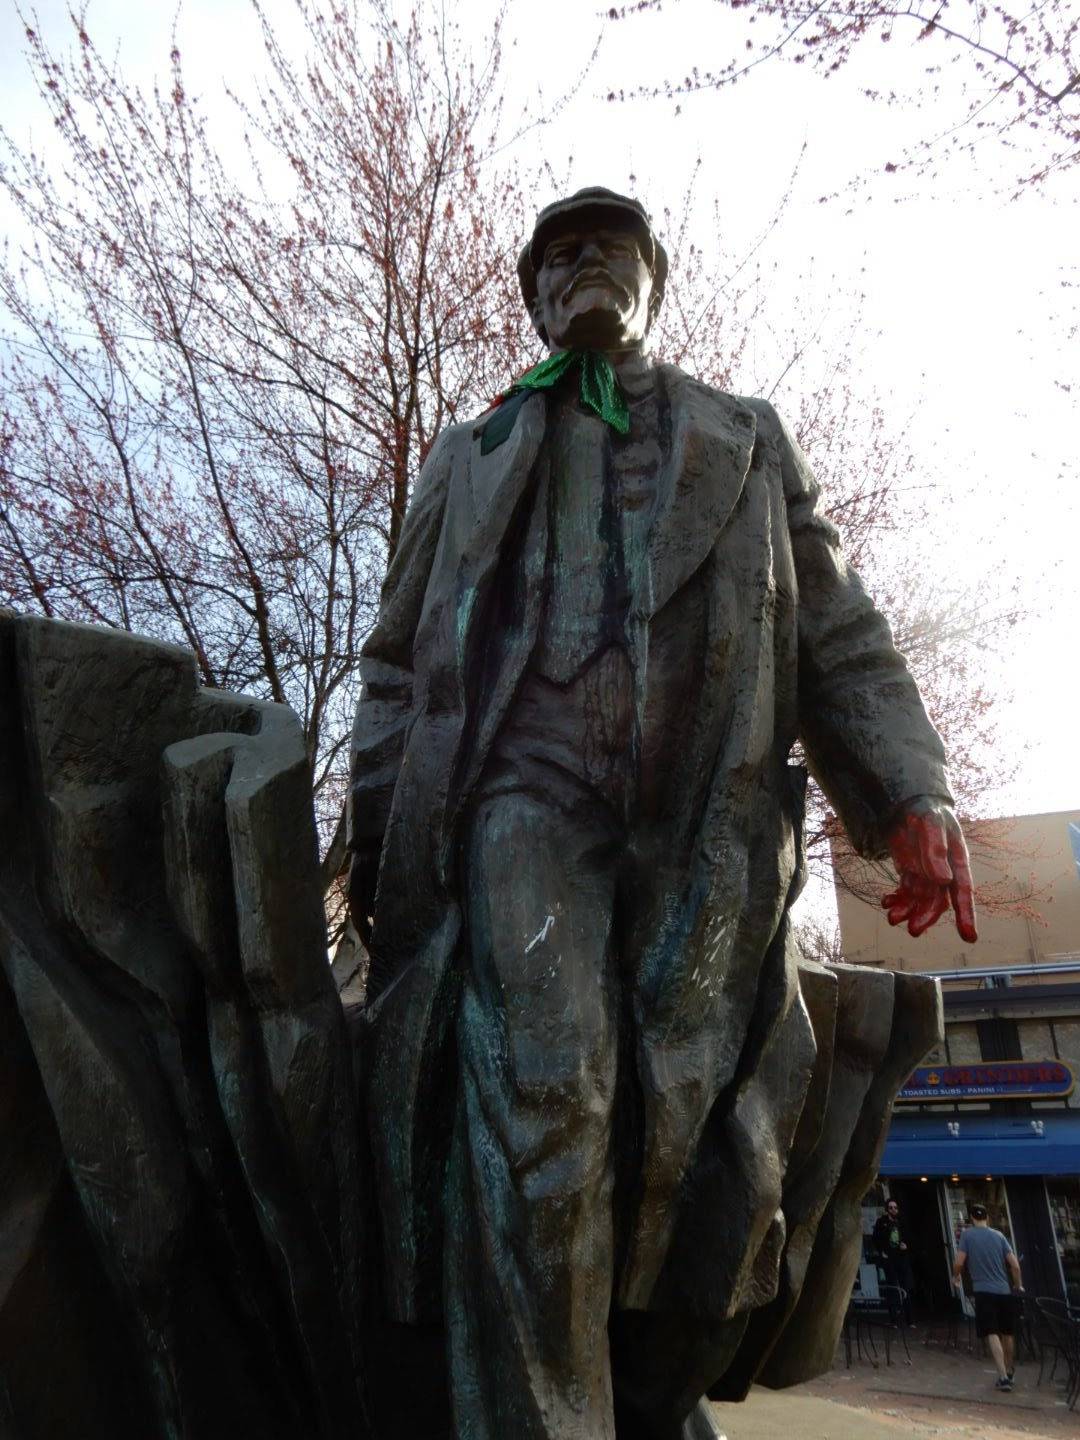 The Lenin of Fremont